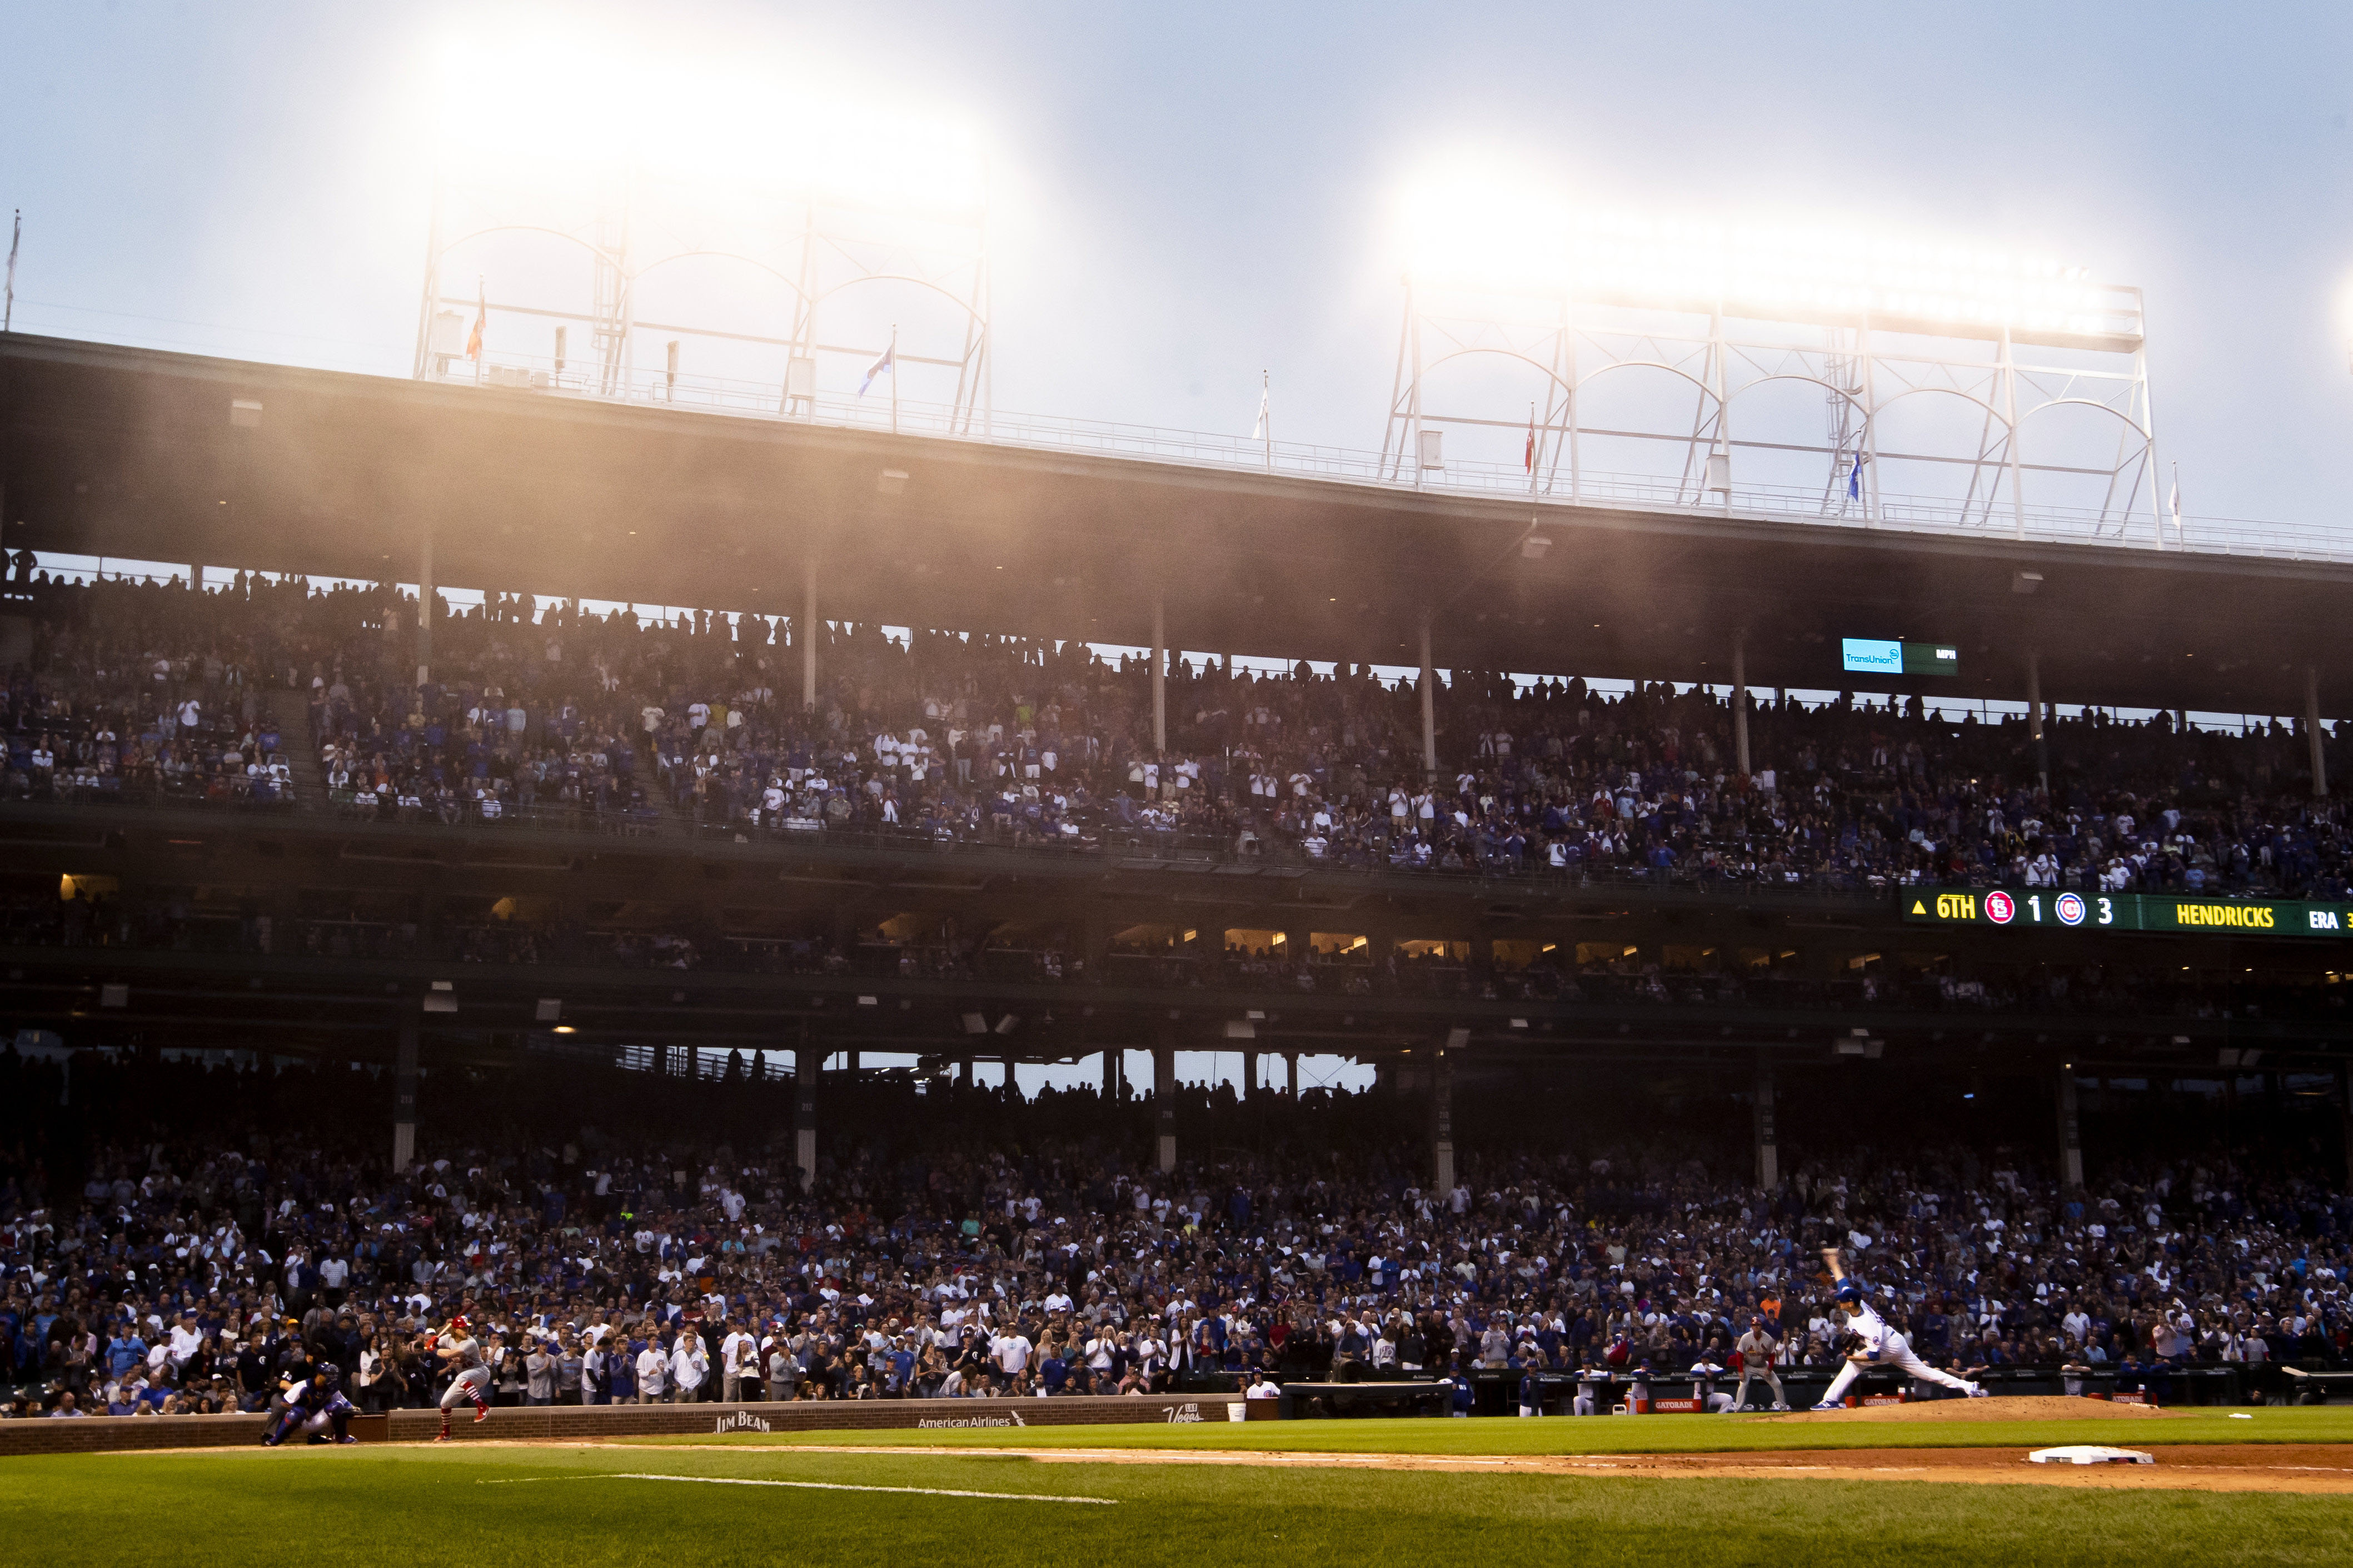 Cubs mulling opening sportsbook, betting kiosks at Wrigley Field